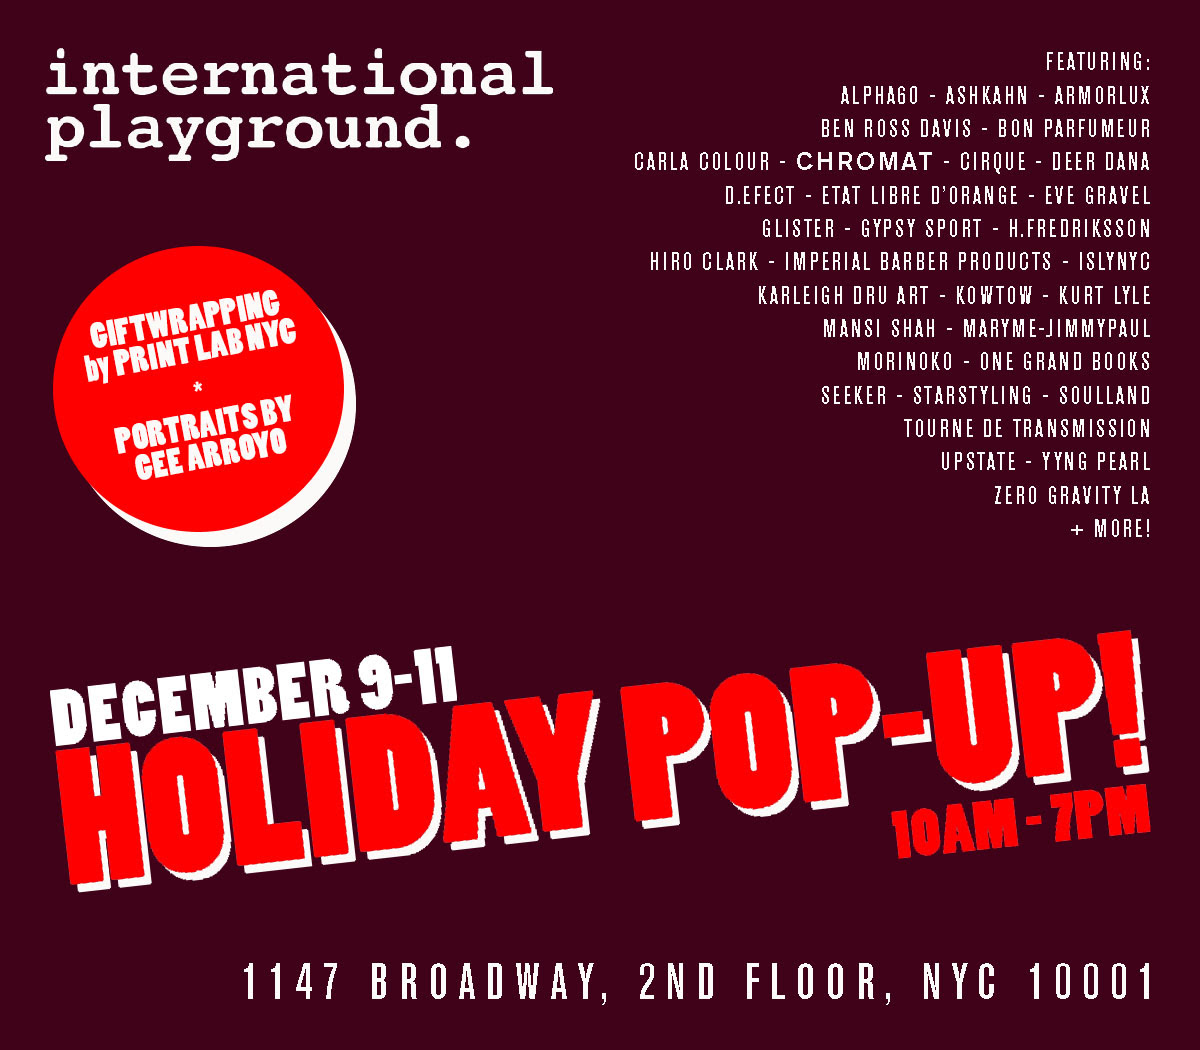 Holiday Pop Up @ International Playground Opens Tomorrow >